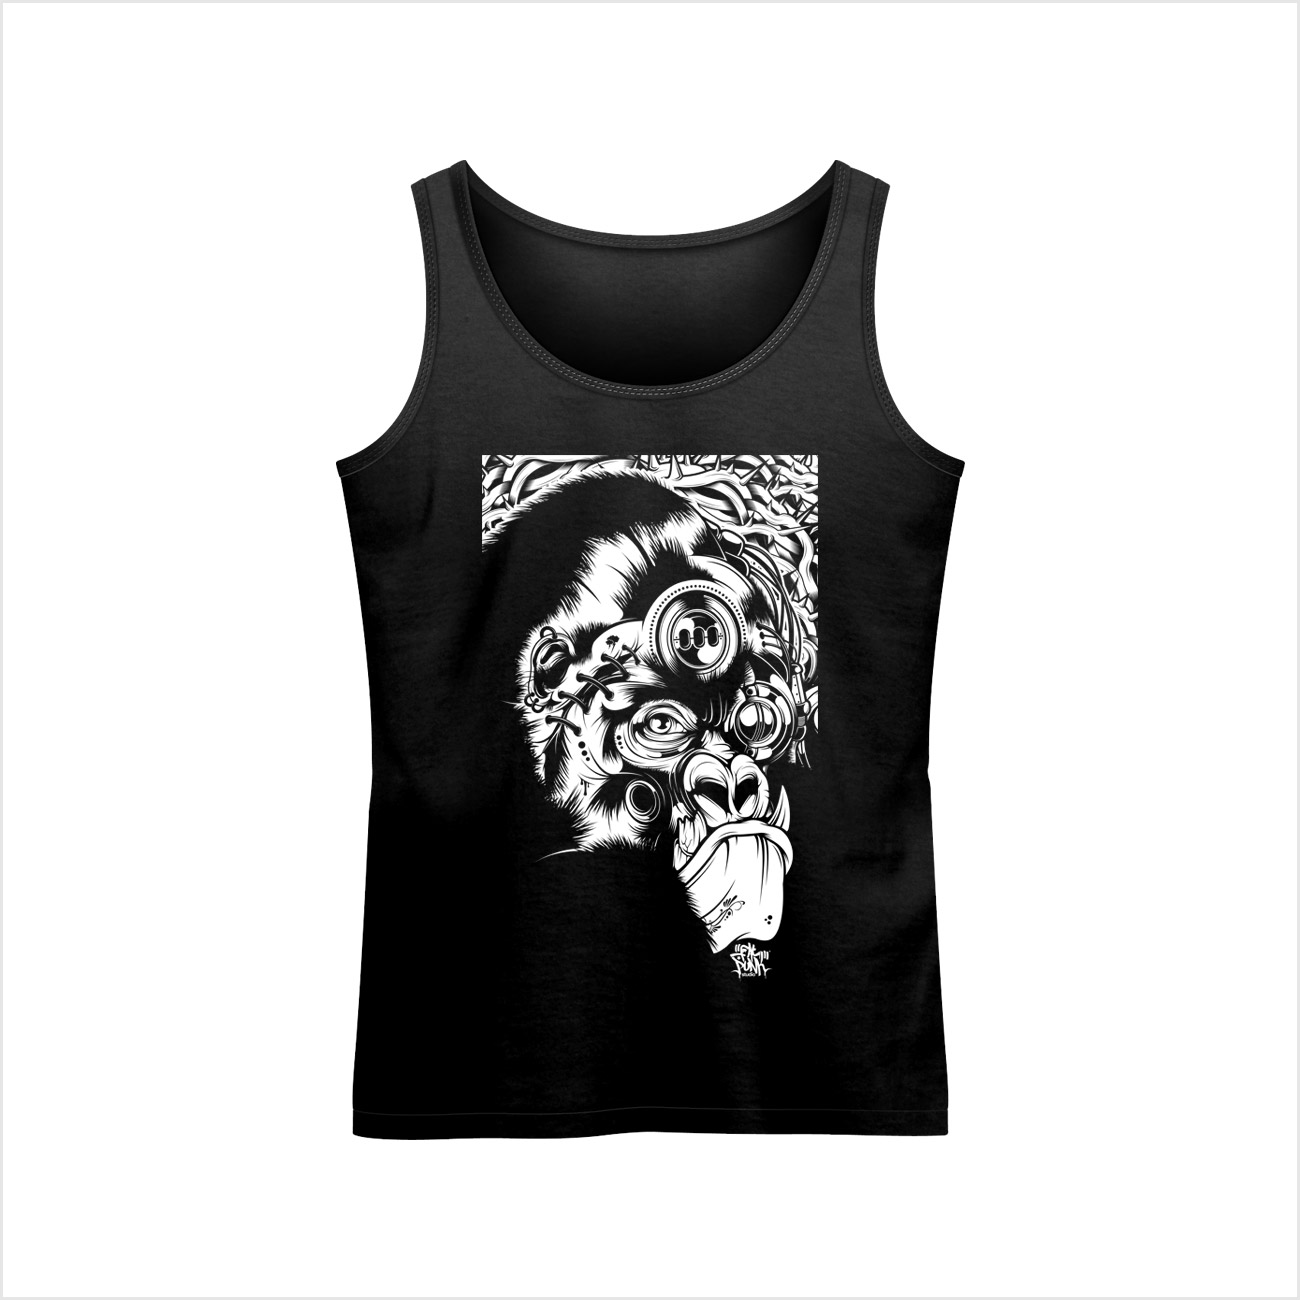 fat-punk-studio-gorilla-vest-top-black-01